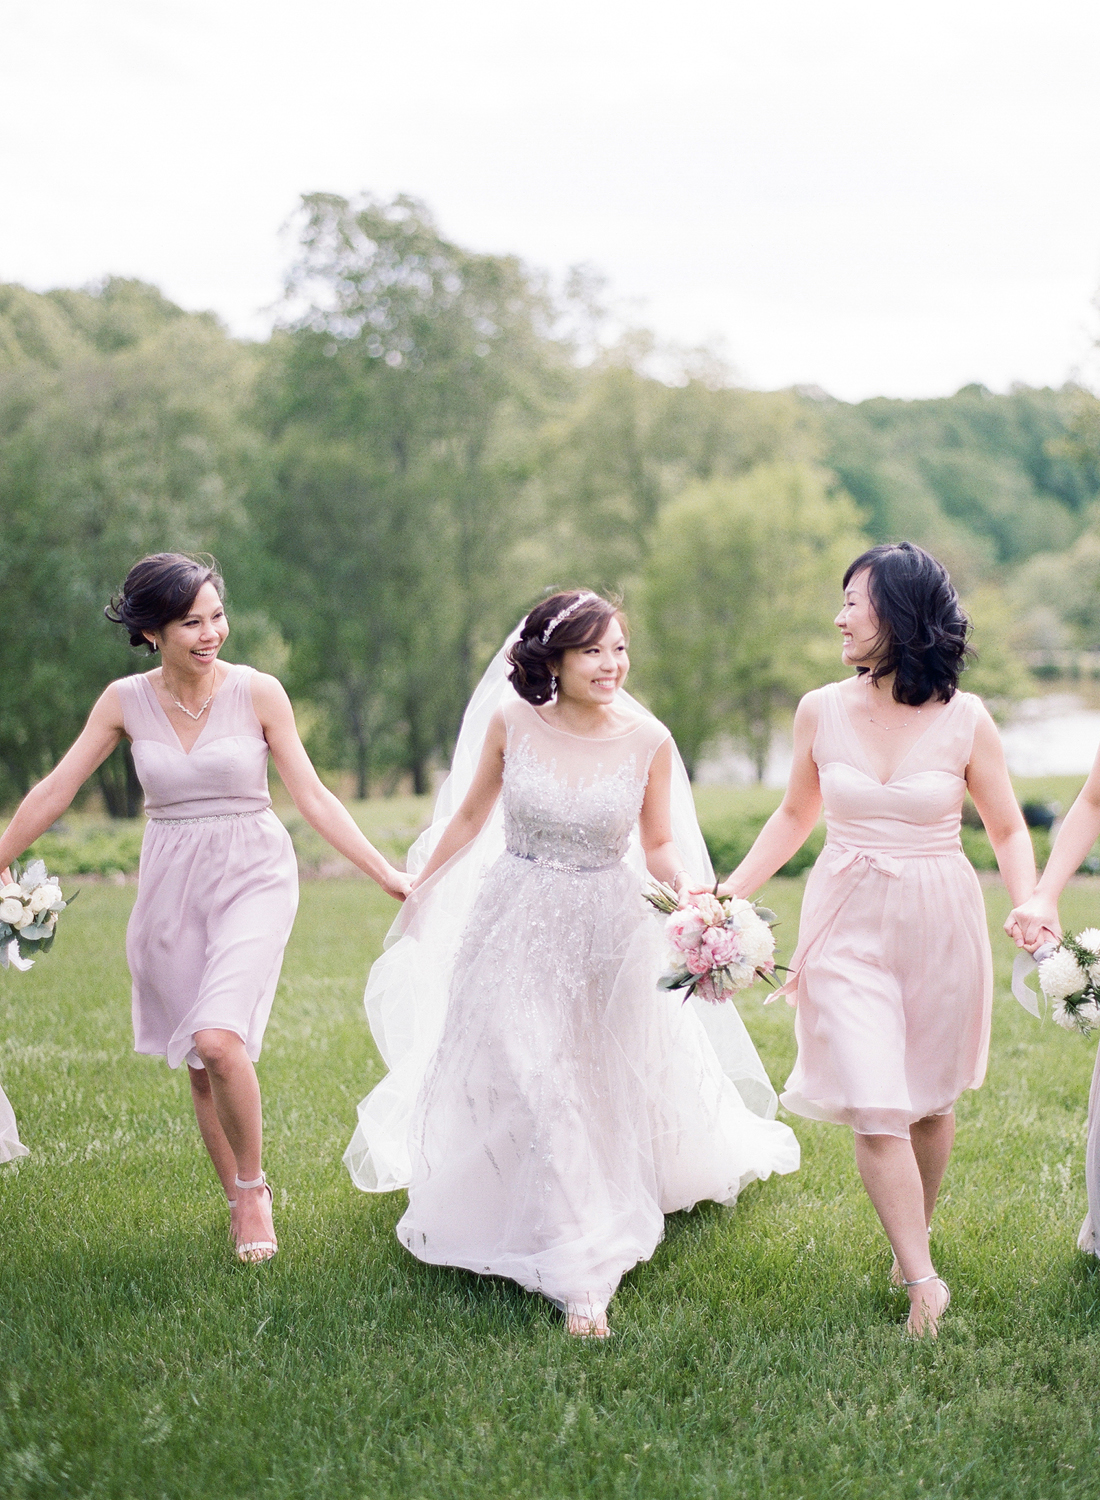 Pastel Bridesmaids Virginia wedding